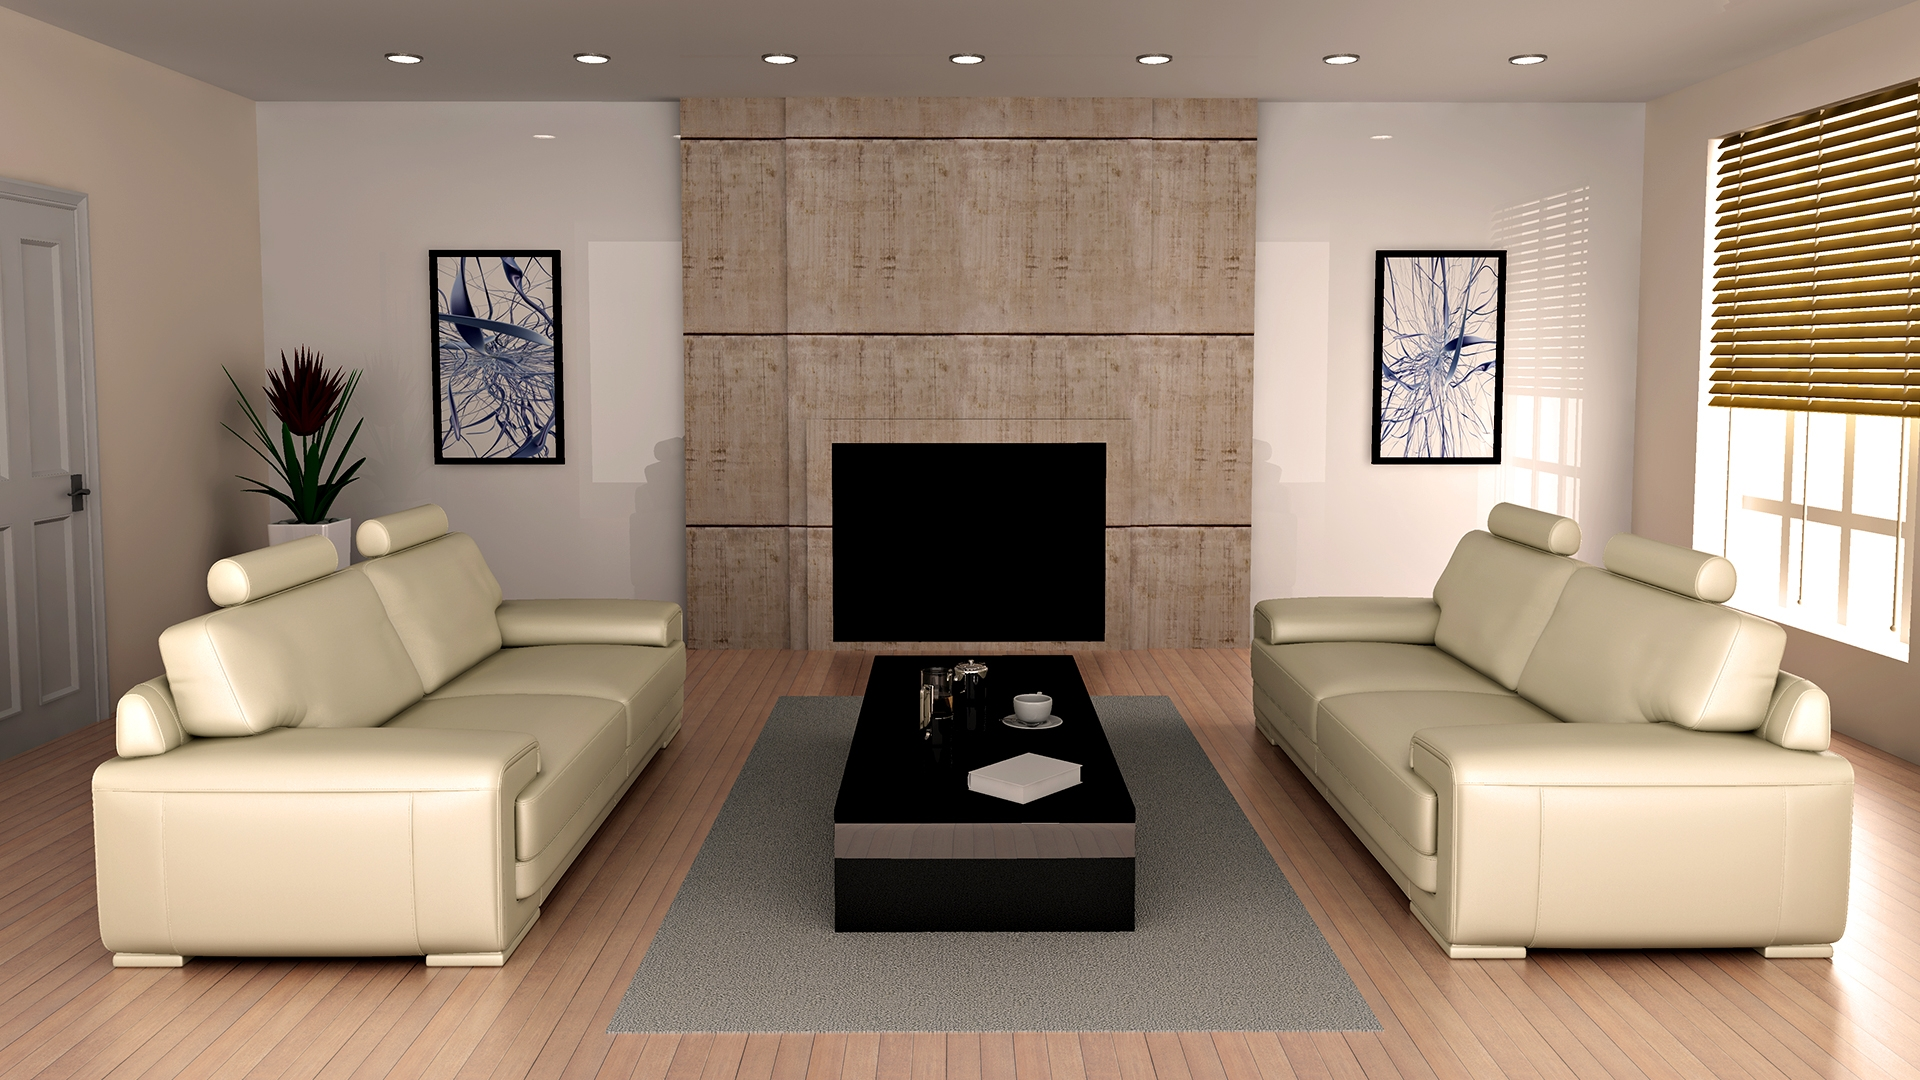 Download Wallpaper 1920x1080 Furniture Design White Living Room Full Hd 1080p Hd Background